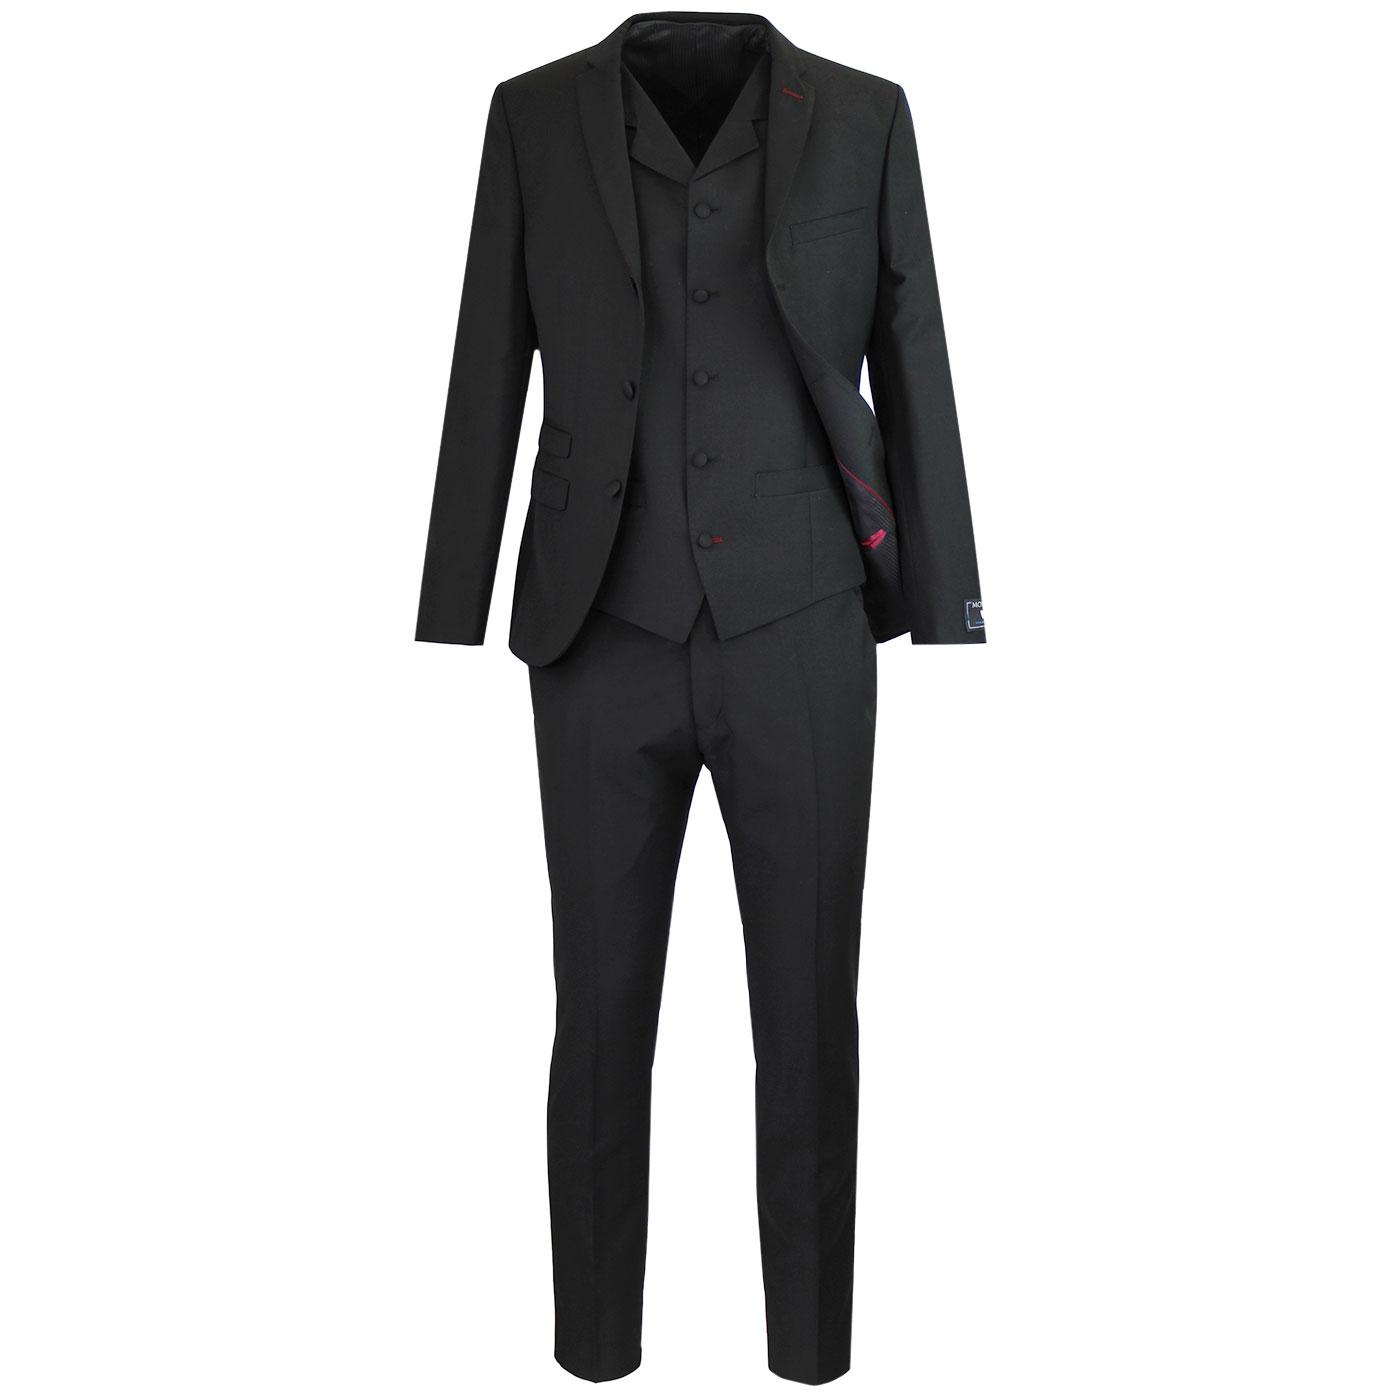 MADCAP ENGLAND 60s Mod Mohair Suit in Black